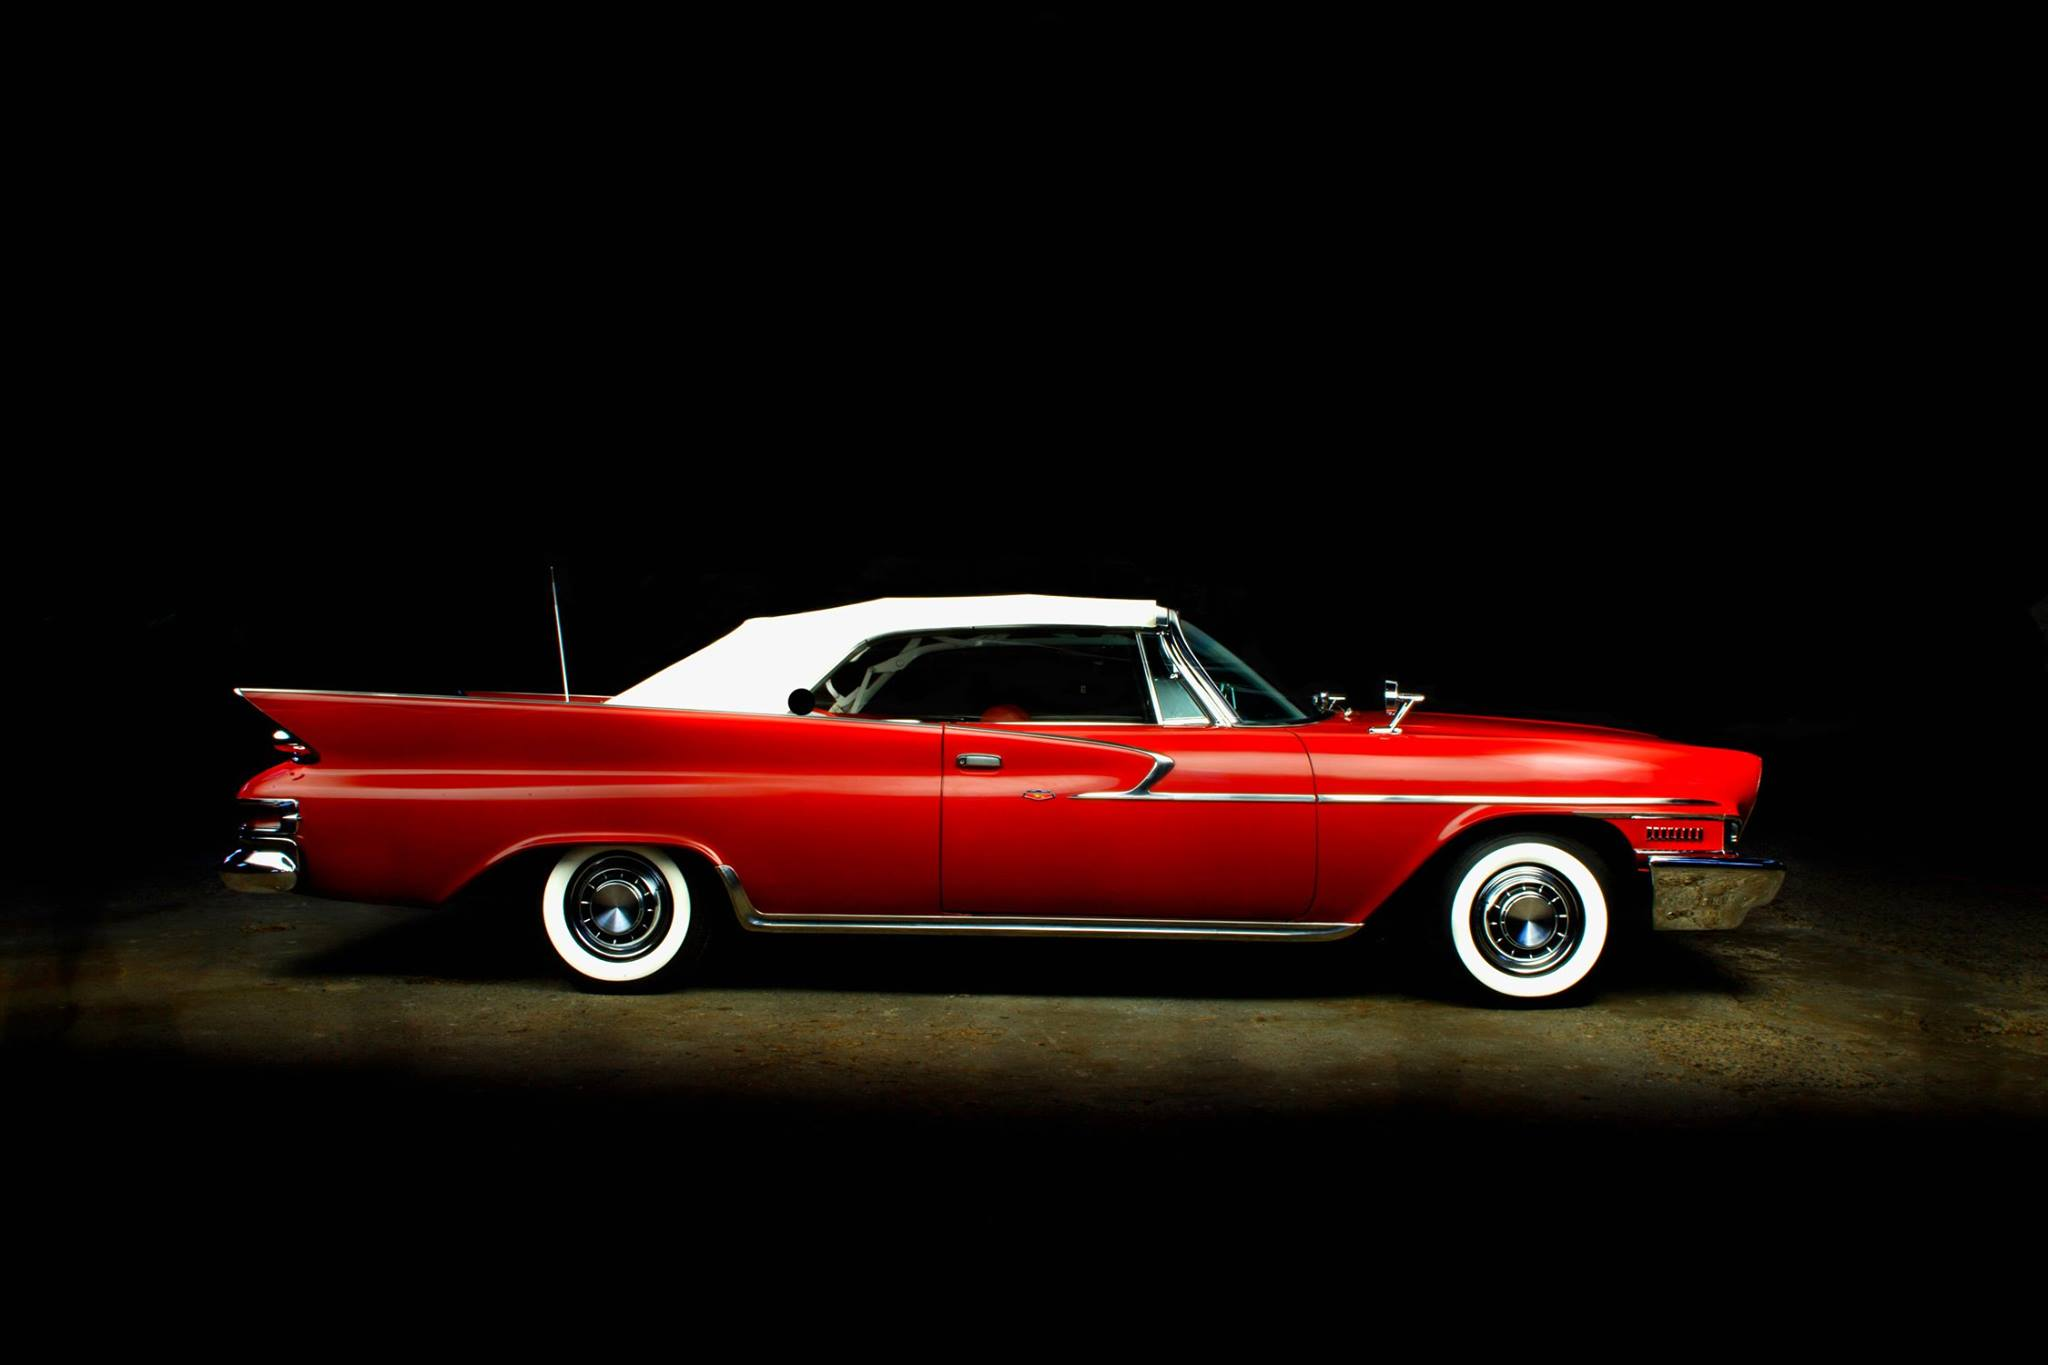 Reddish Chrysler on Black